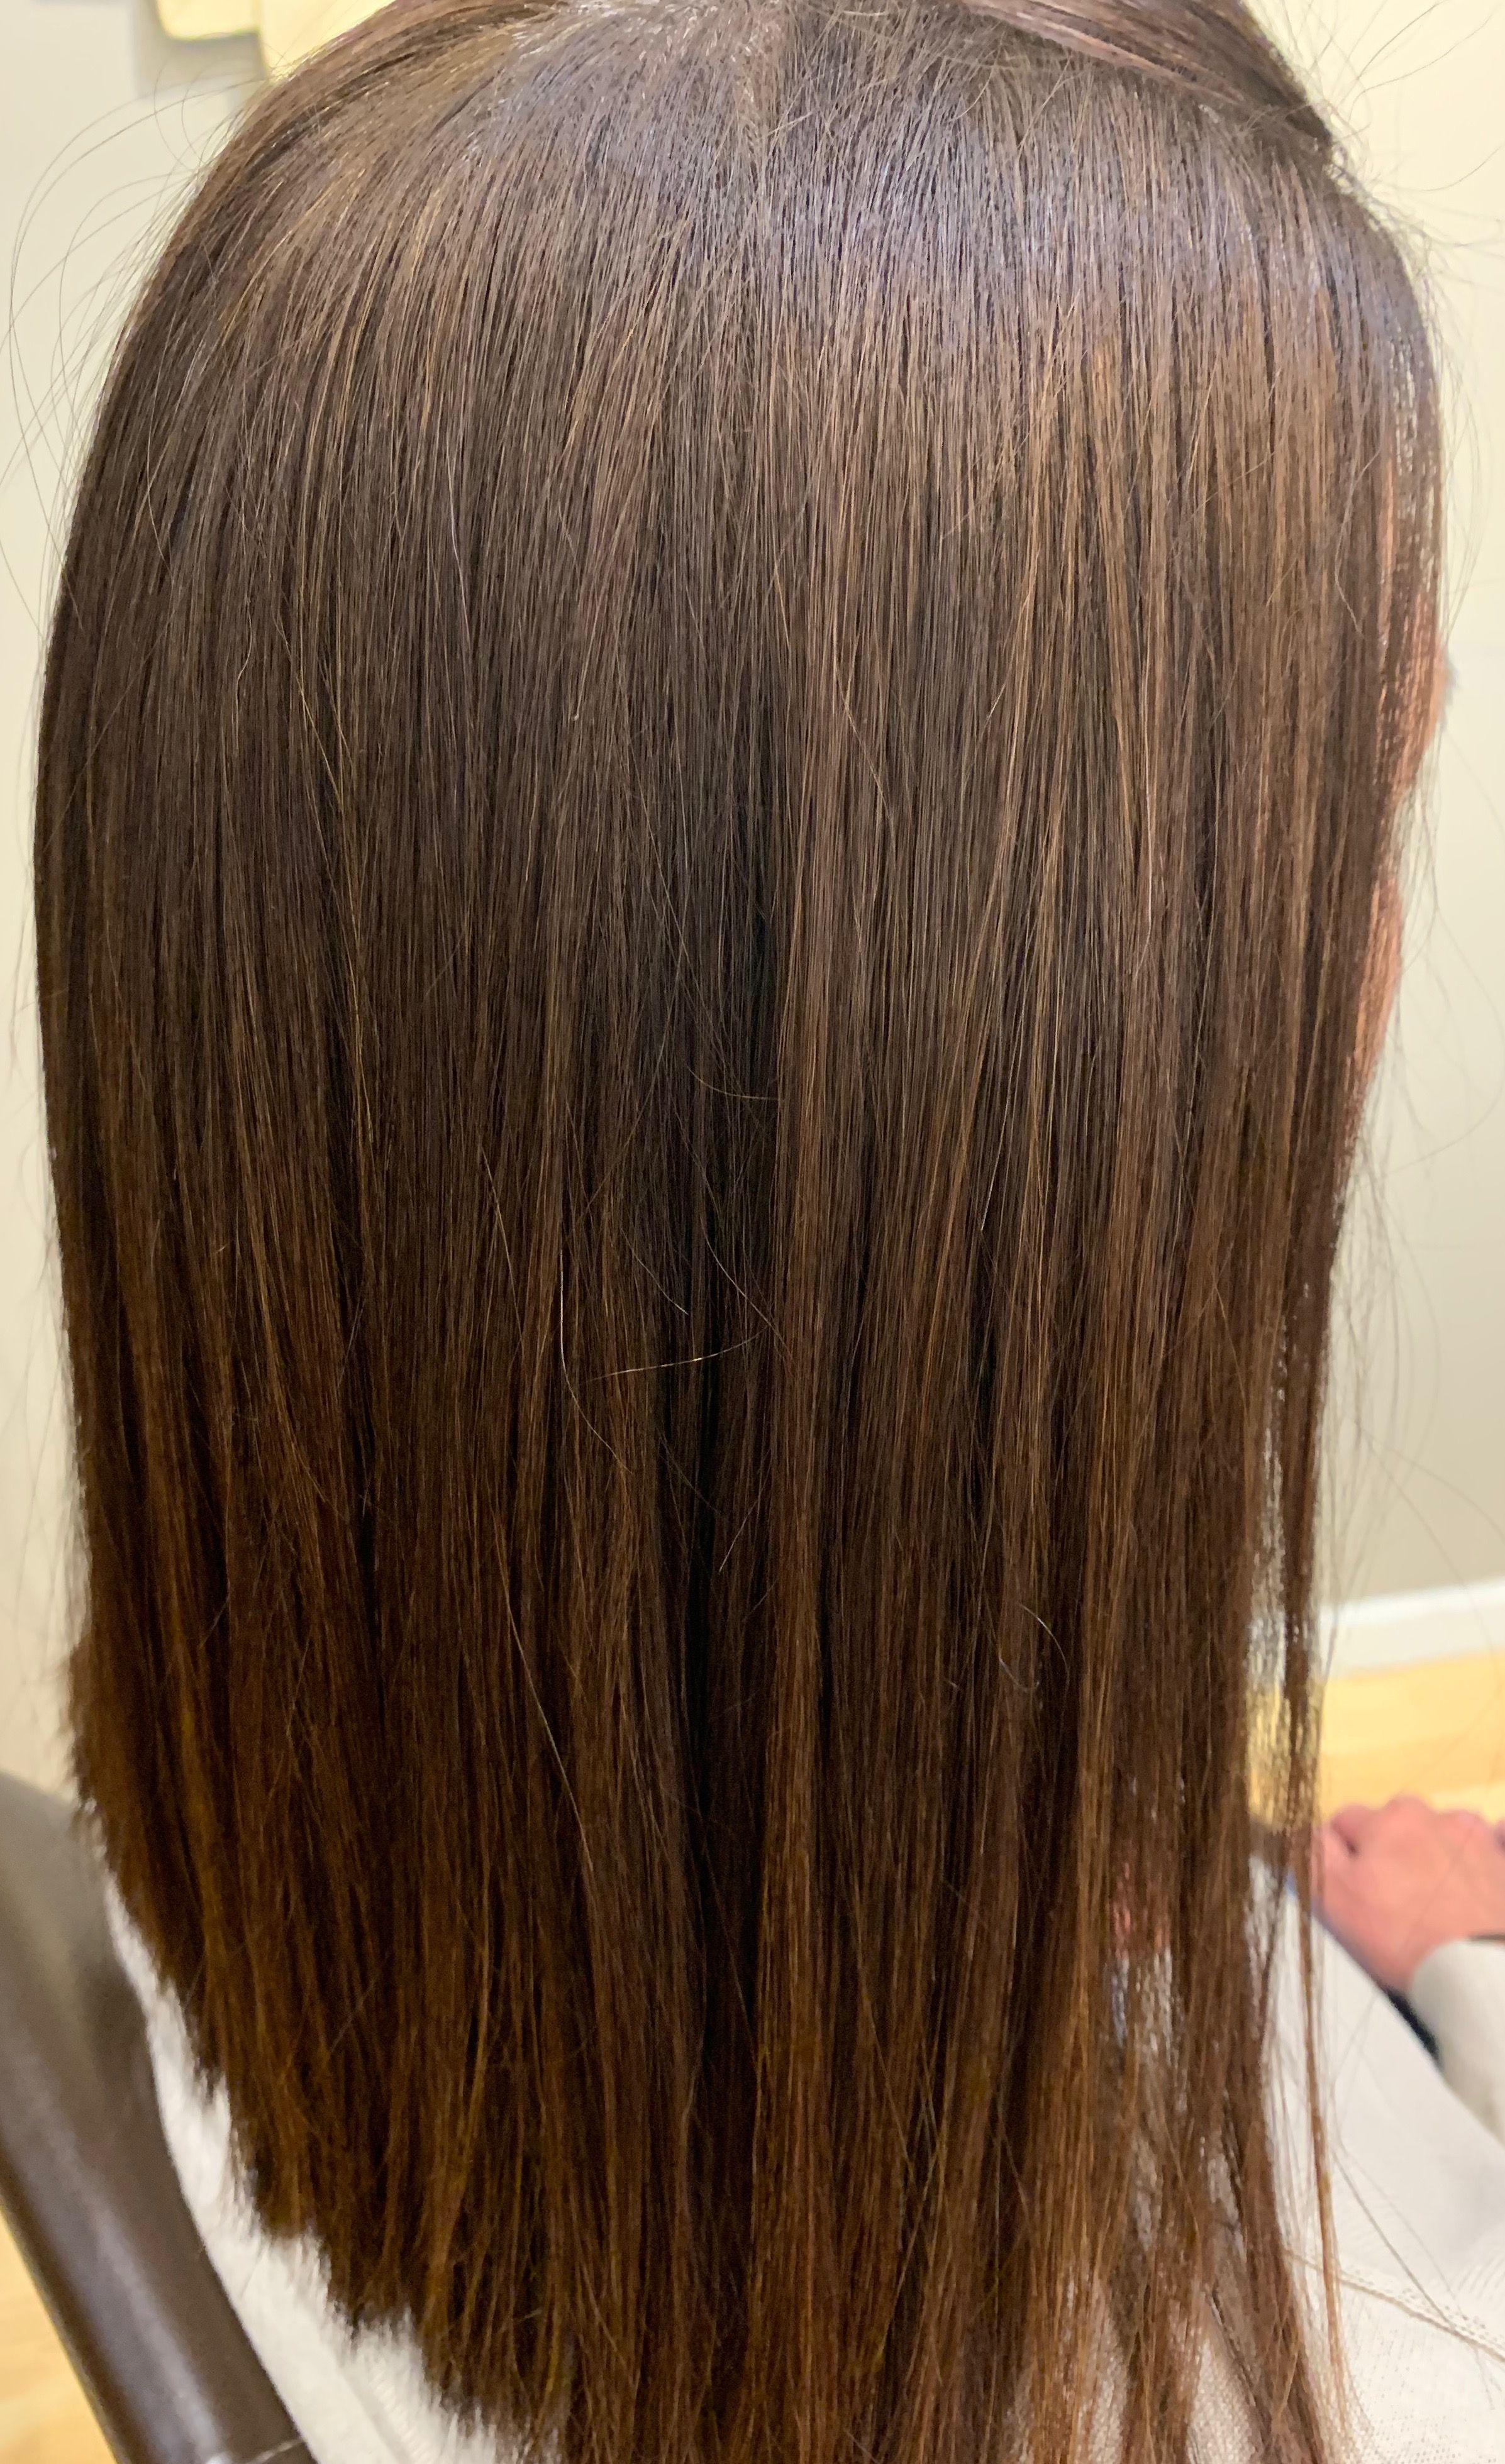 Pin By Evelyn Neary On Marissa S Hair Studio Long Hair Styles Hair Styles Hair Studio